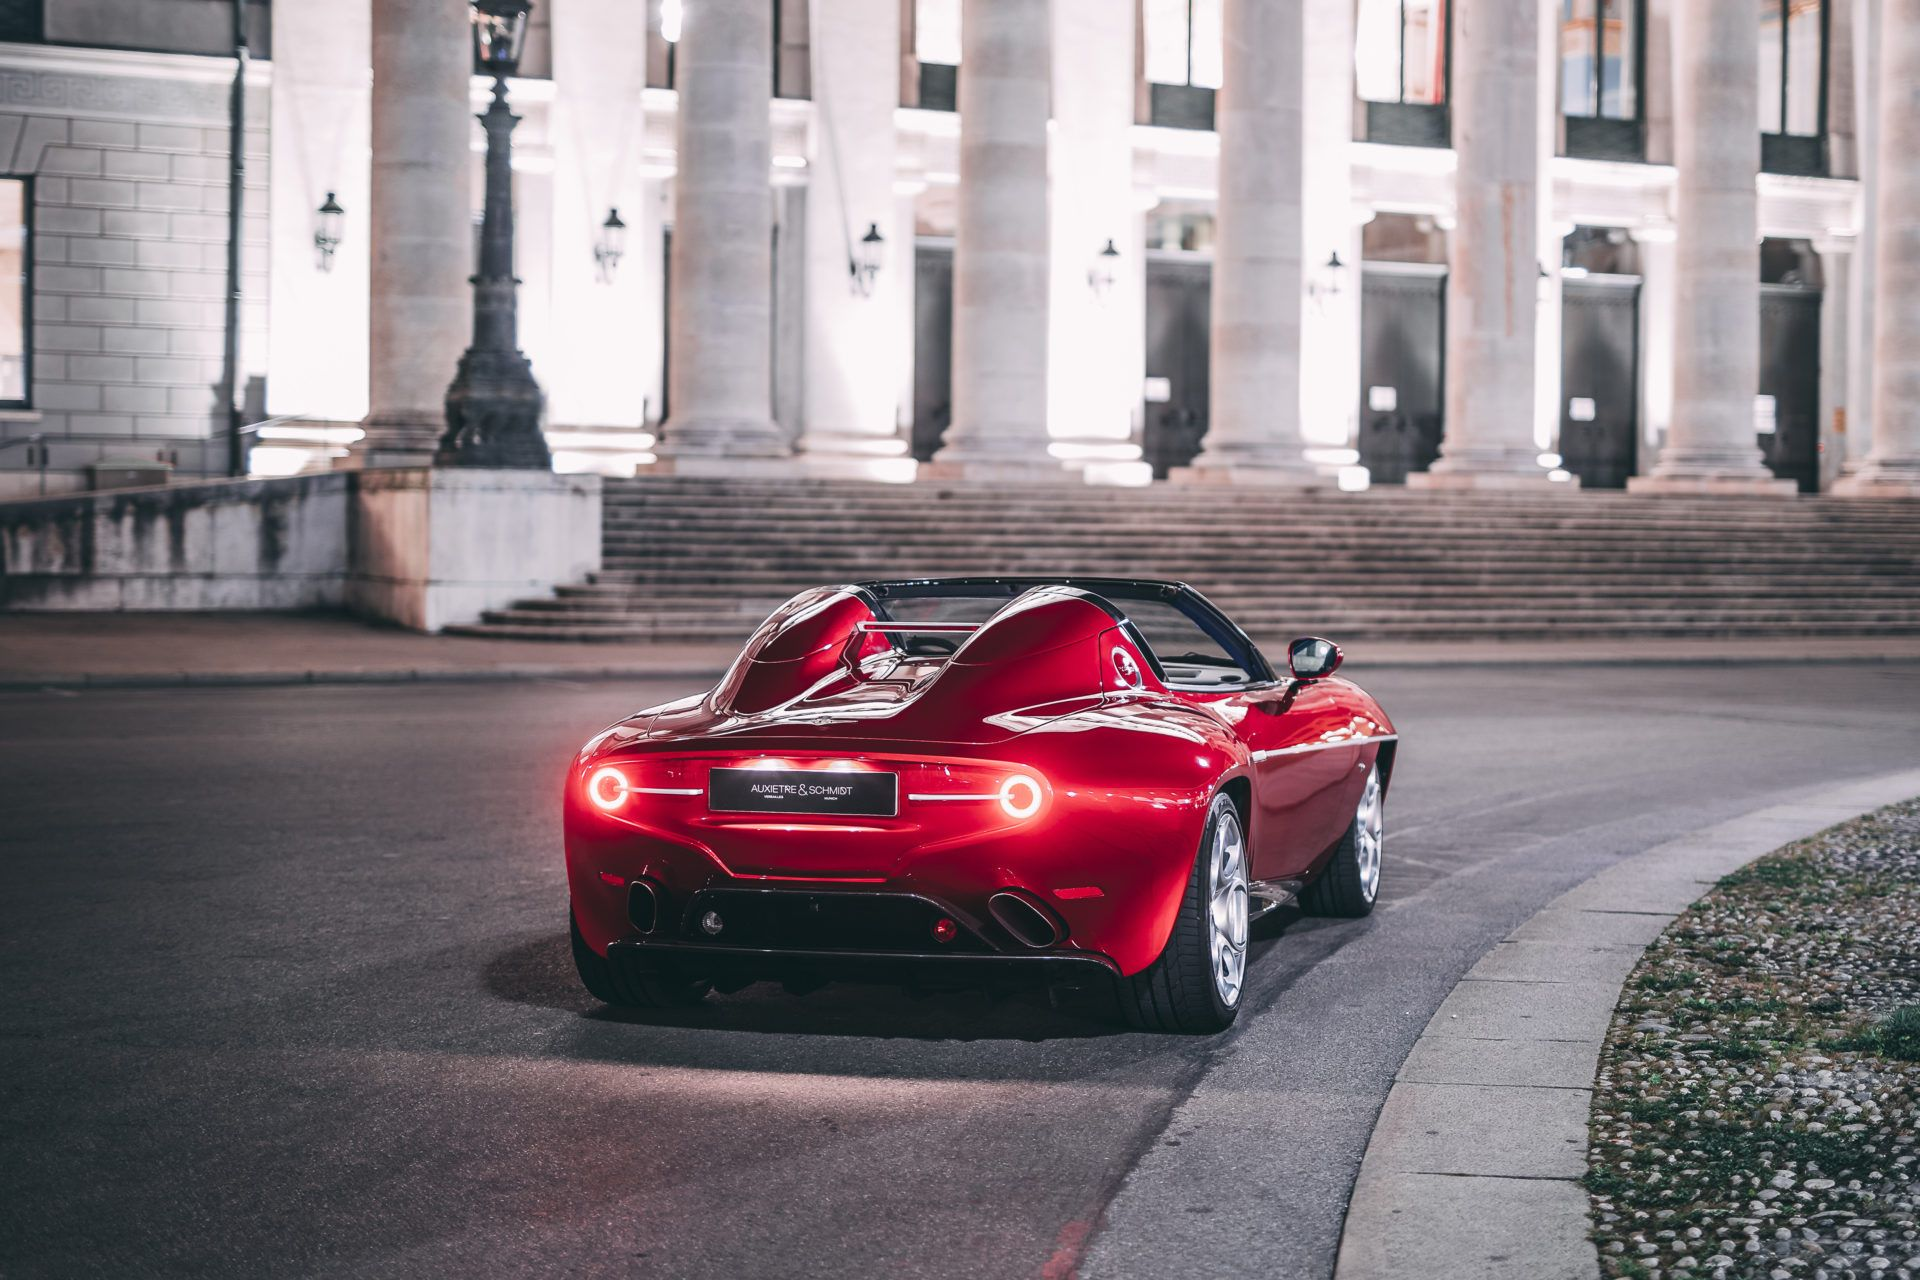 Alfa-Romeo-Disco-Volante-Spyder-for-sale-3